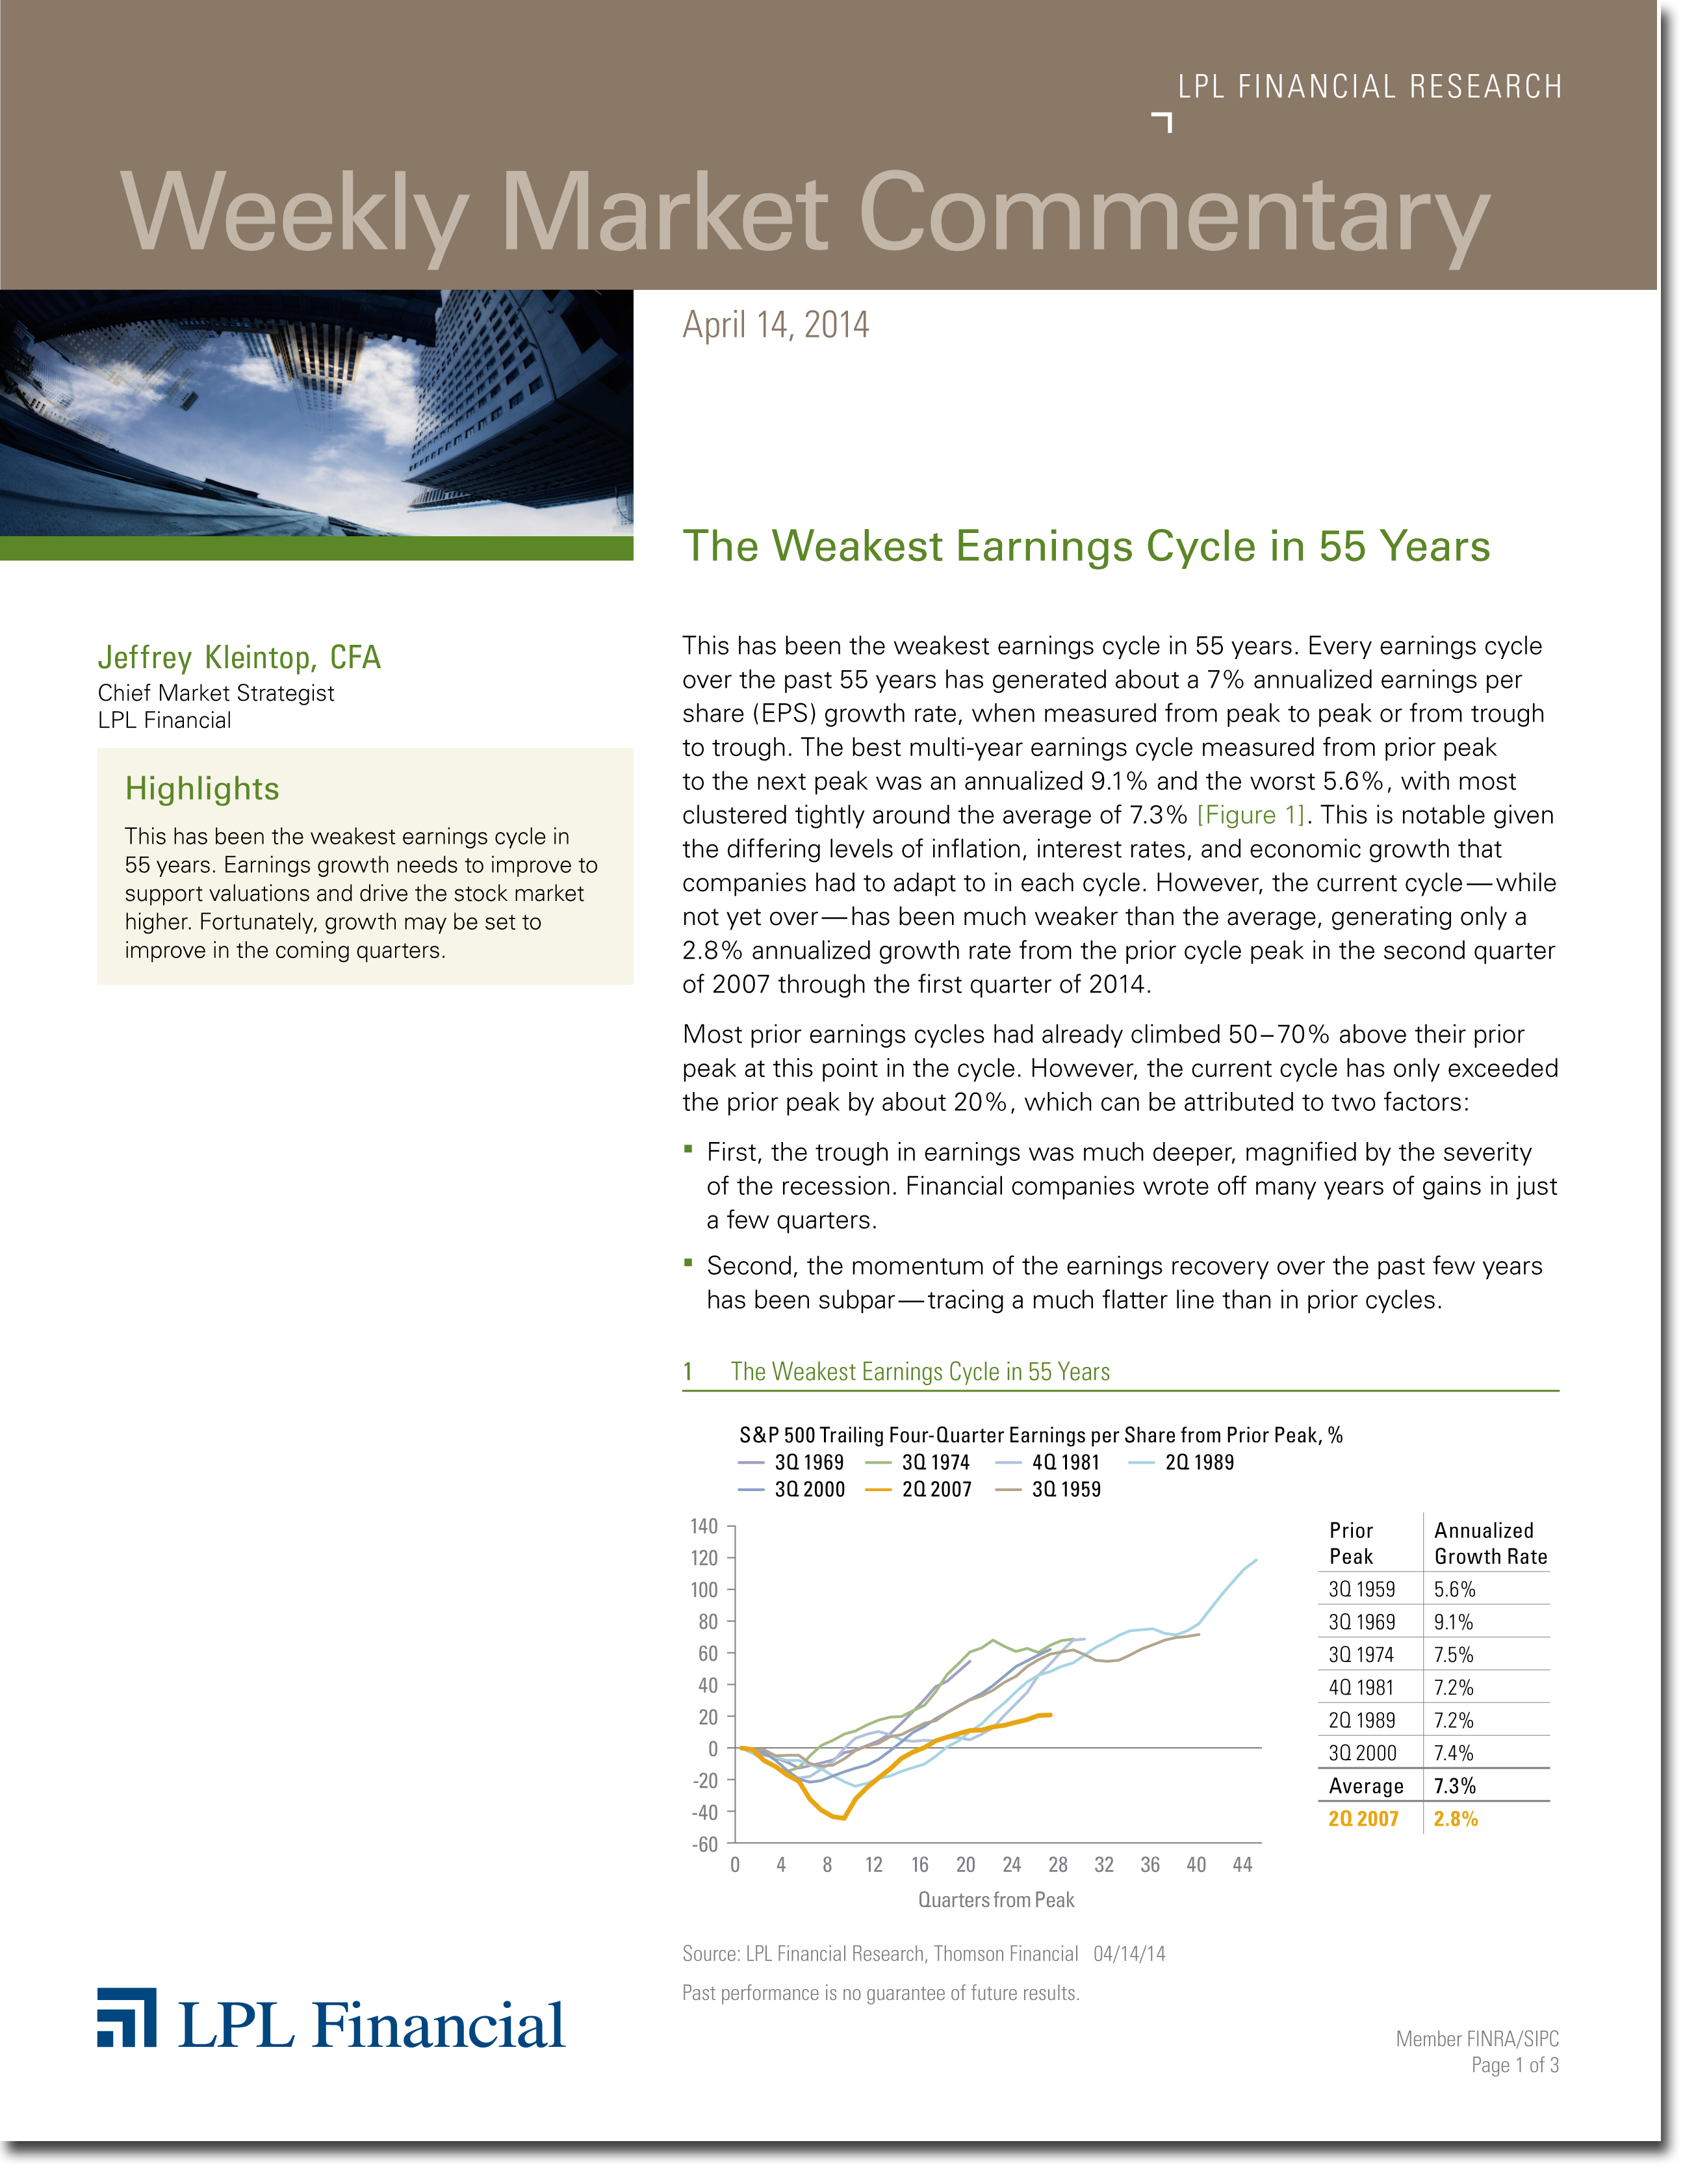 Weekly Market Commentary 4-14-14